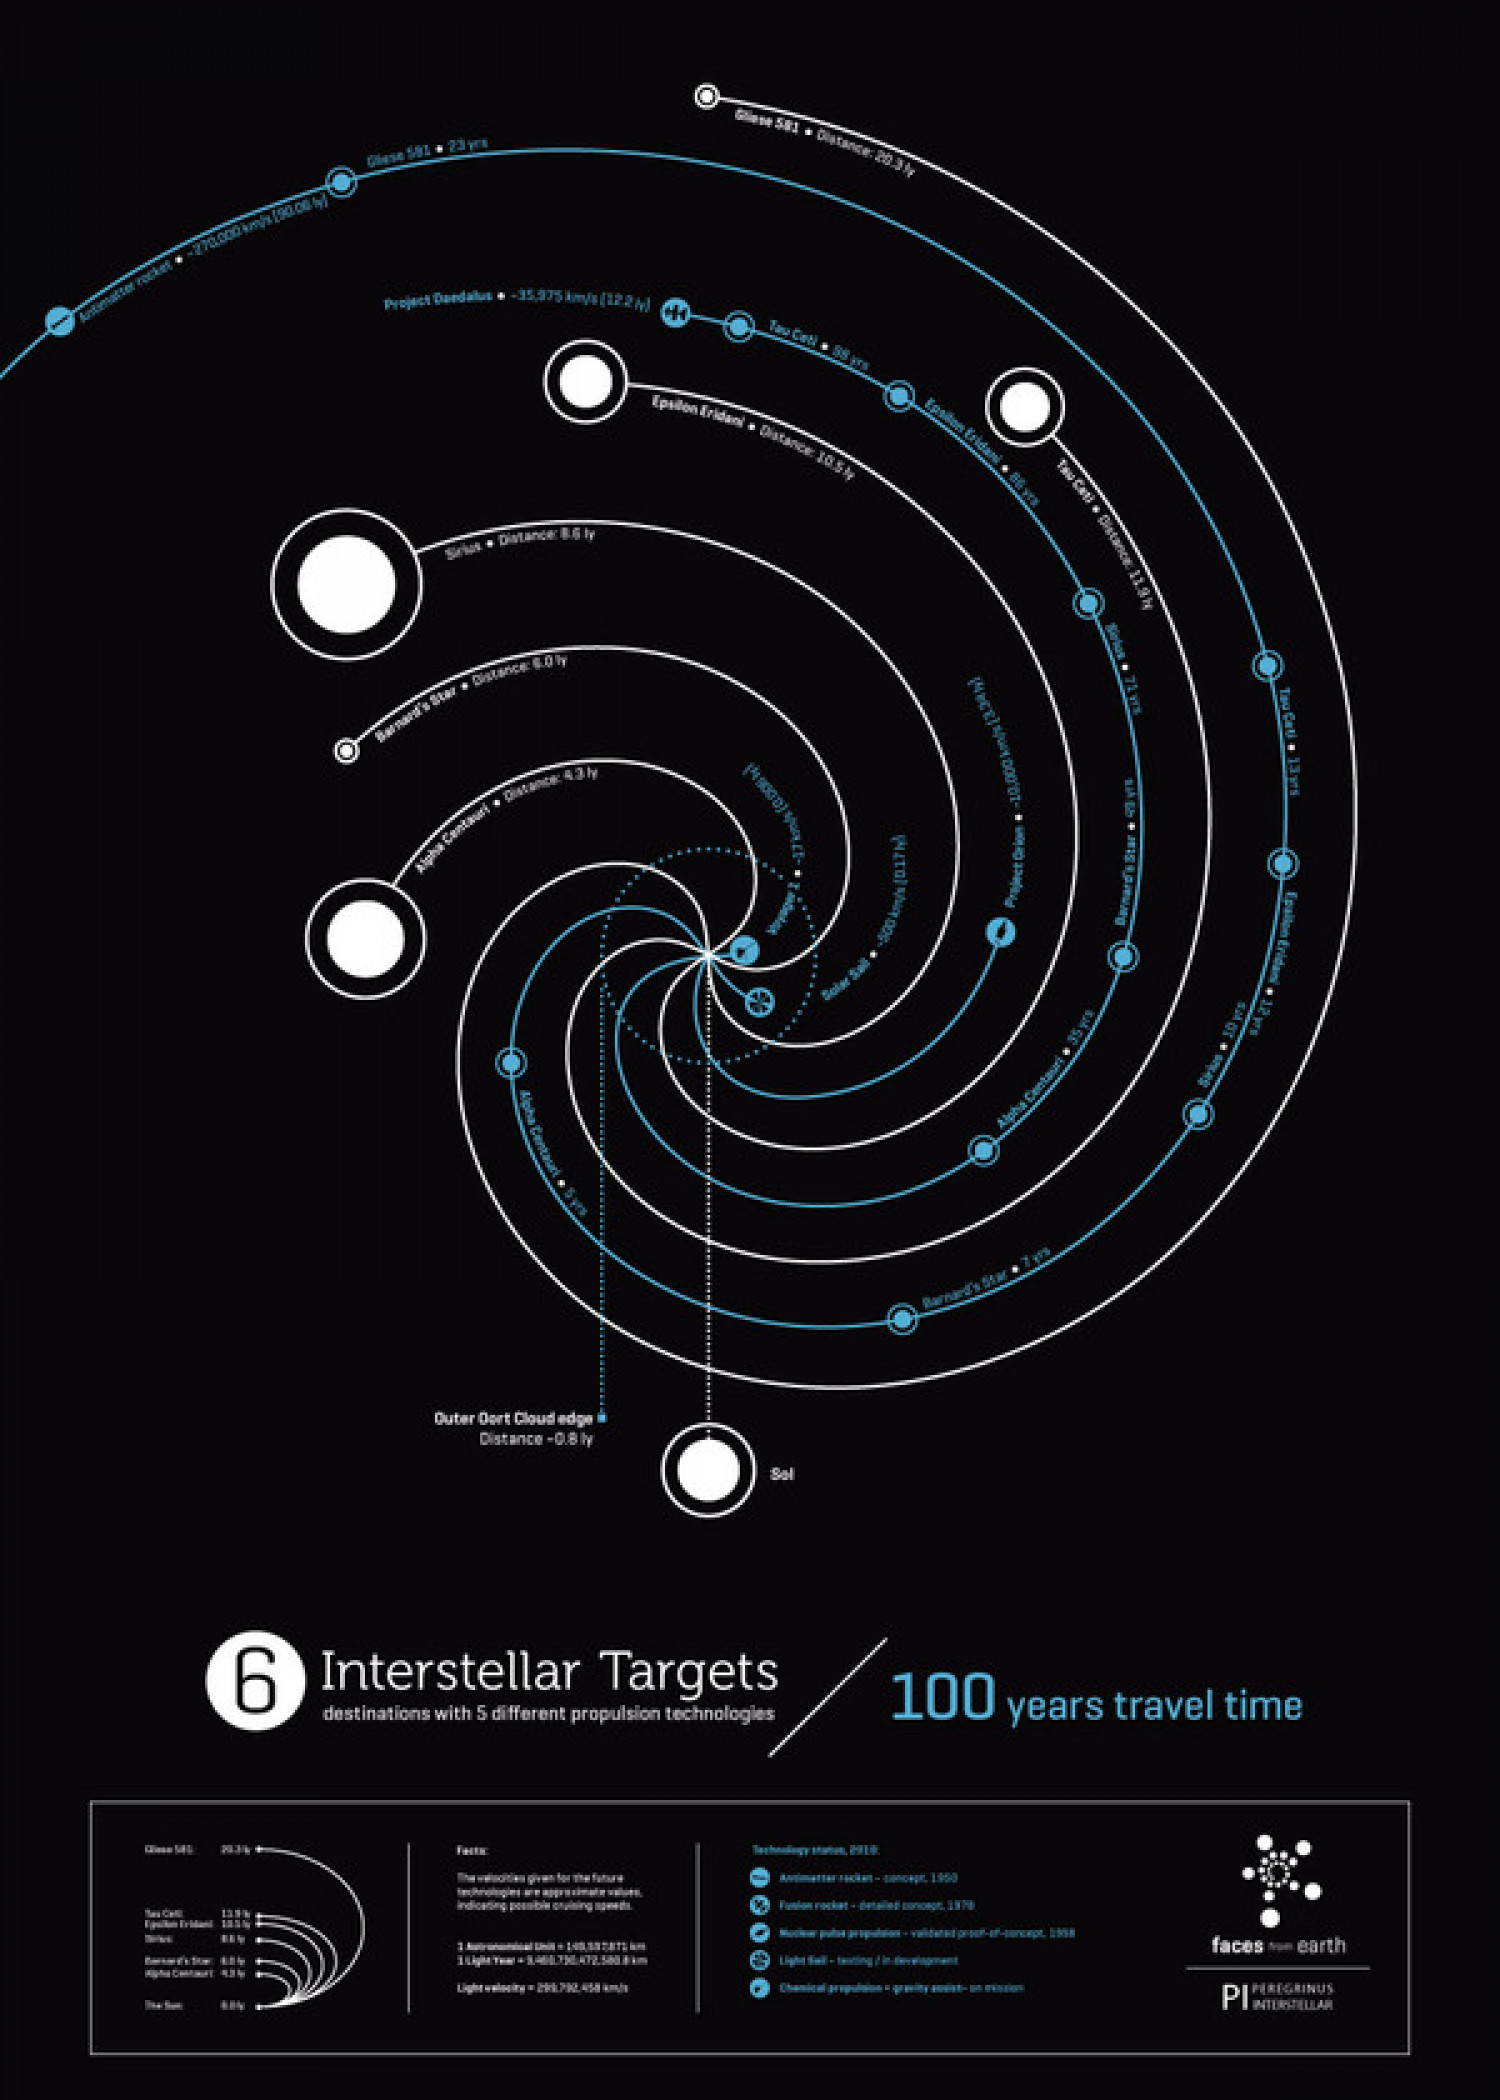 6 Interstellar Targets Infographic